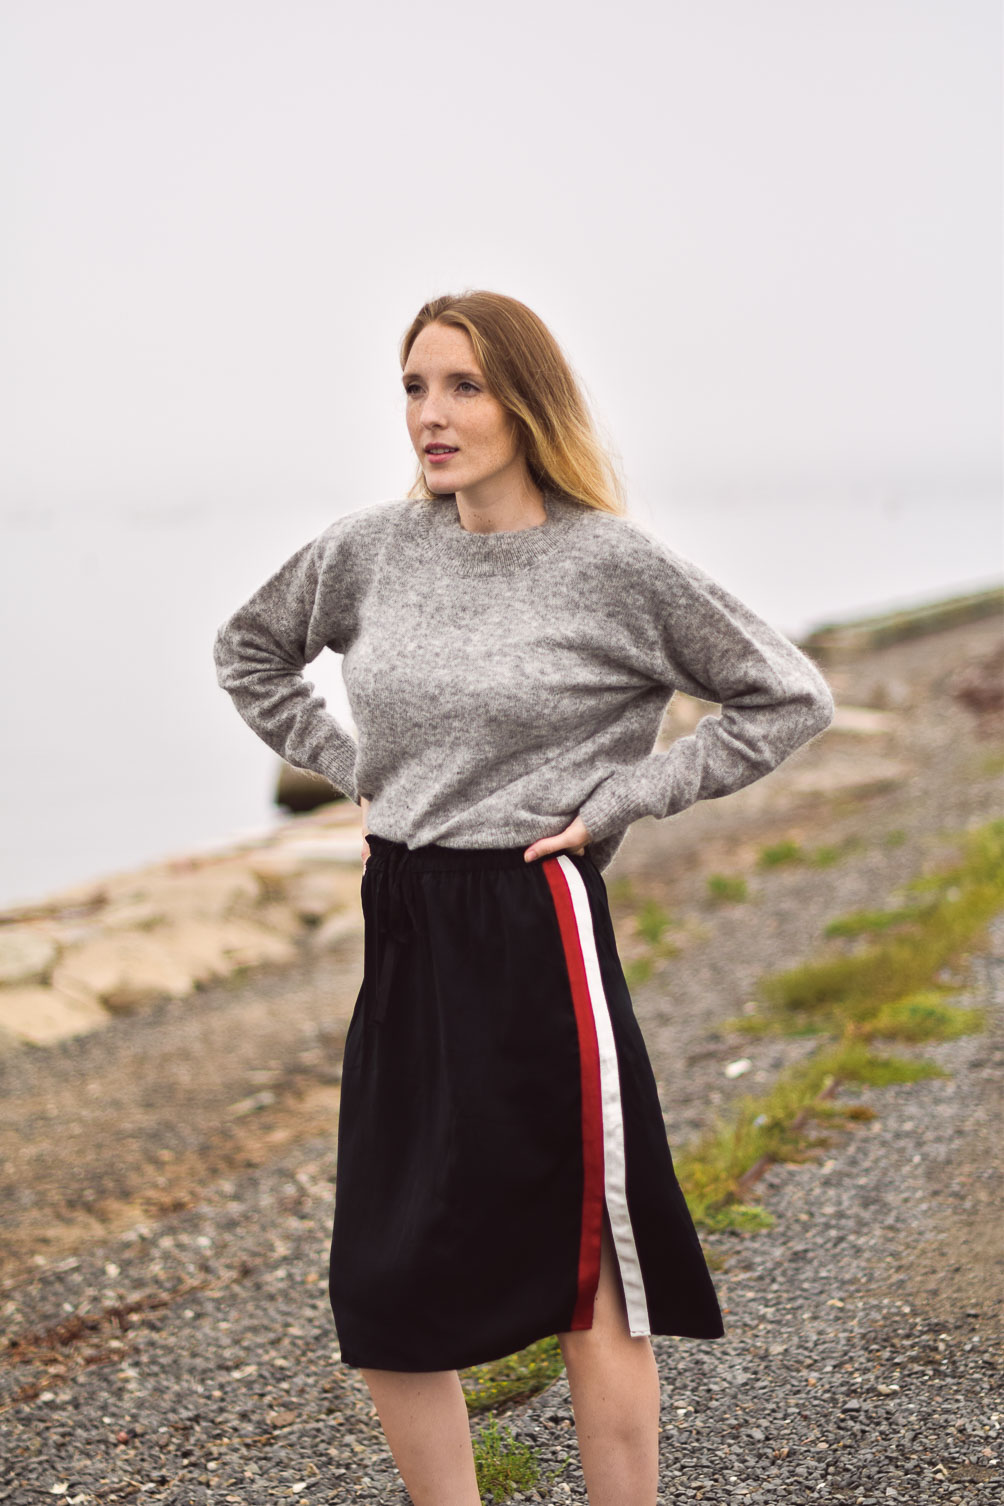 styling a mohair sweater with silky track skirt and black slingback pumps for fall outfit inspiration